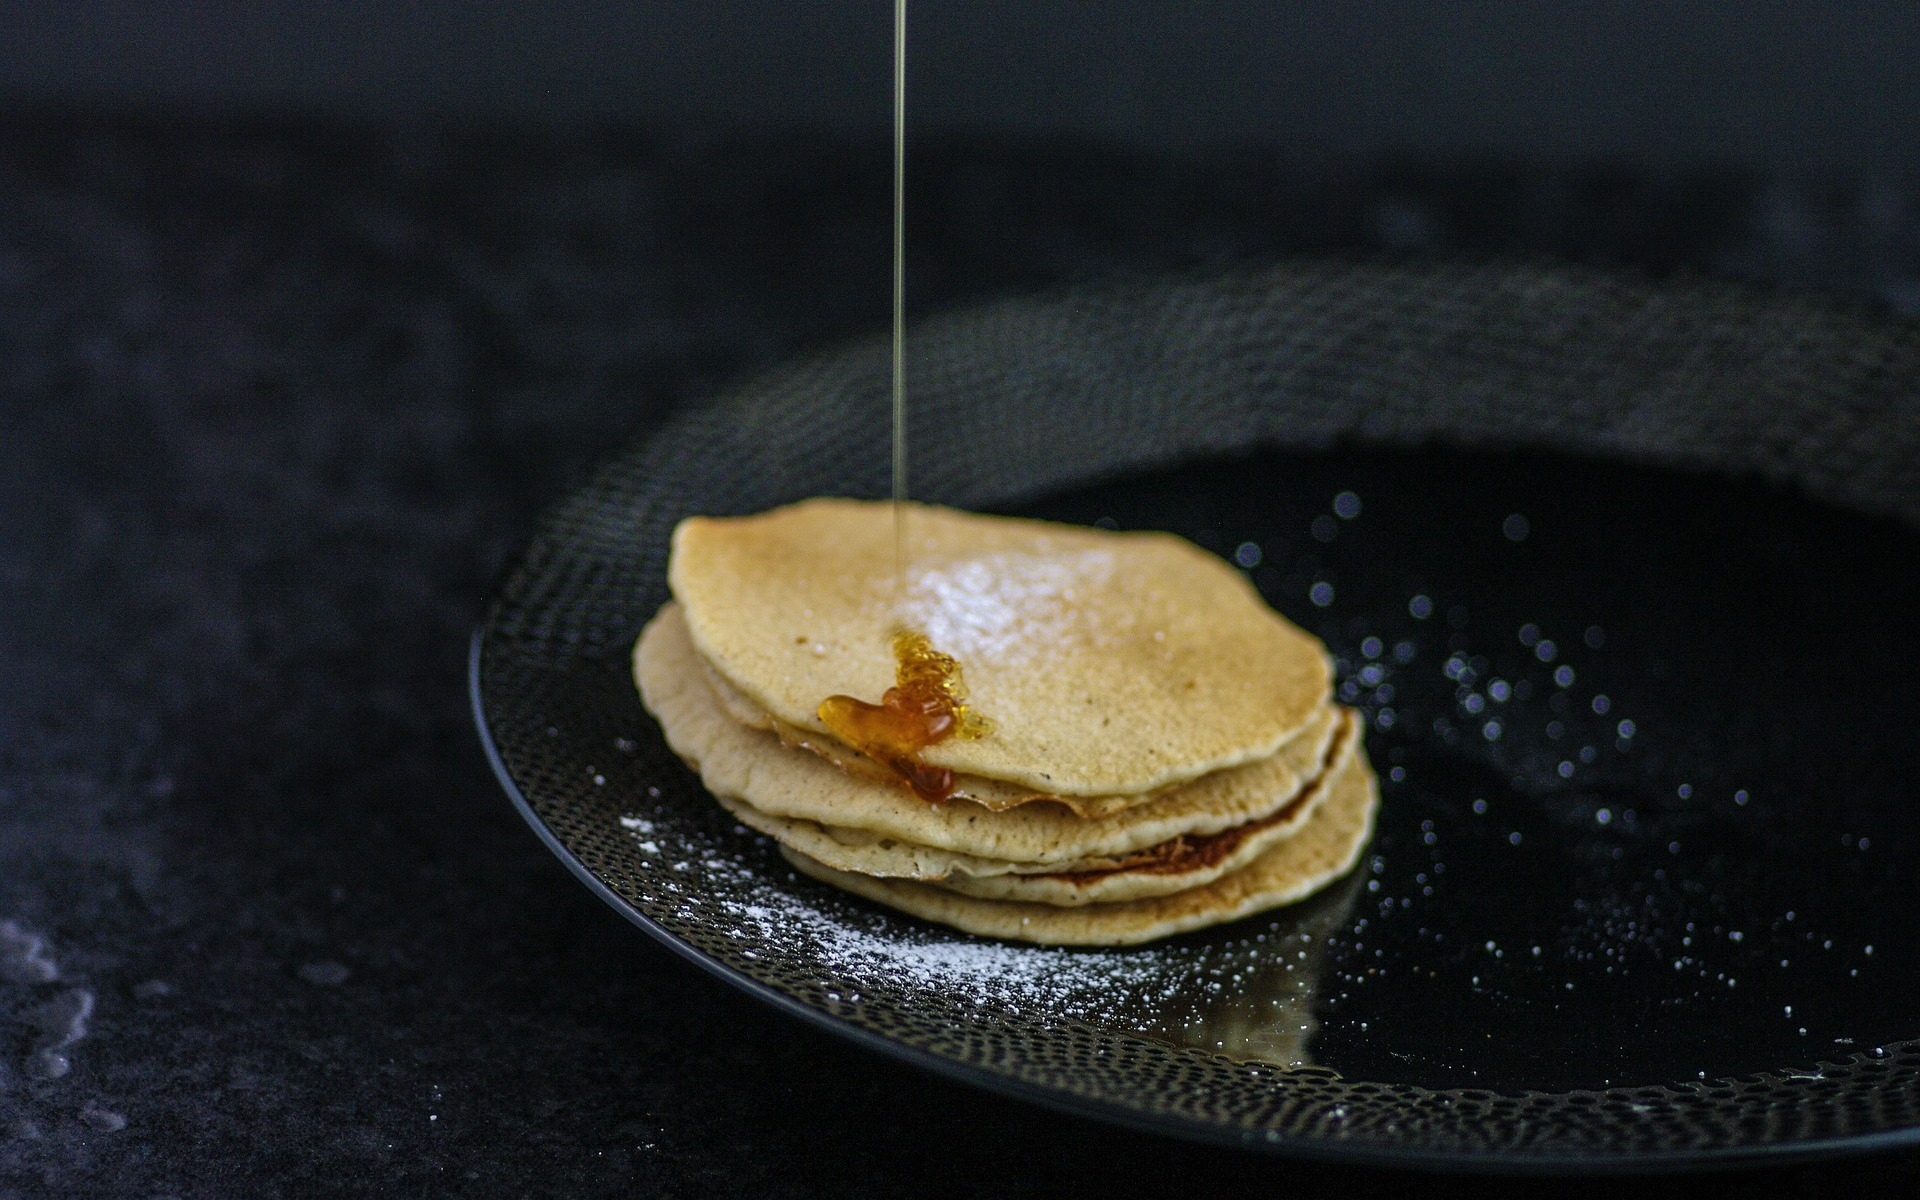 Maple syrup golden syrup pancakes